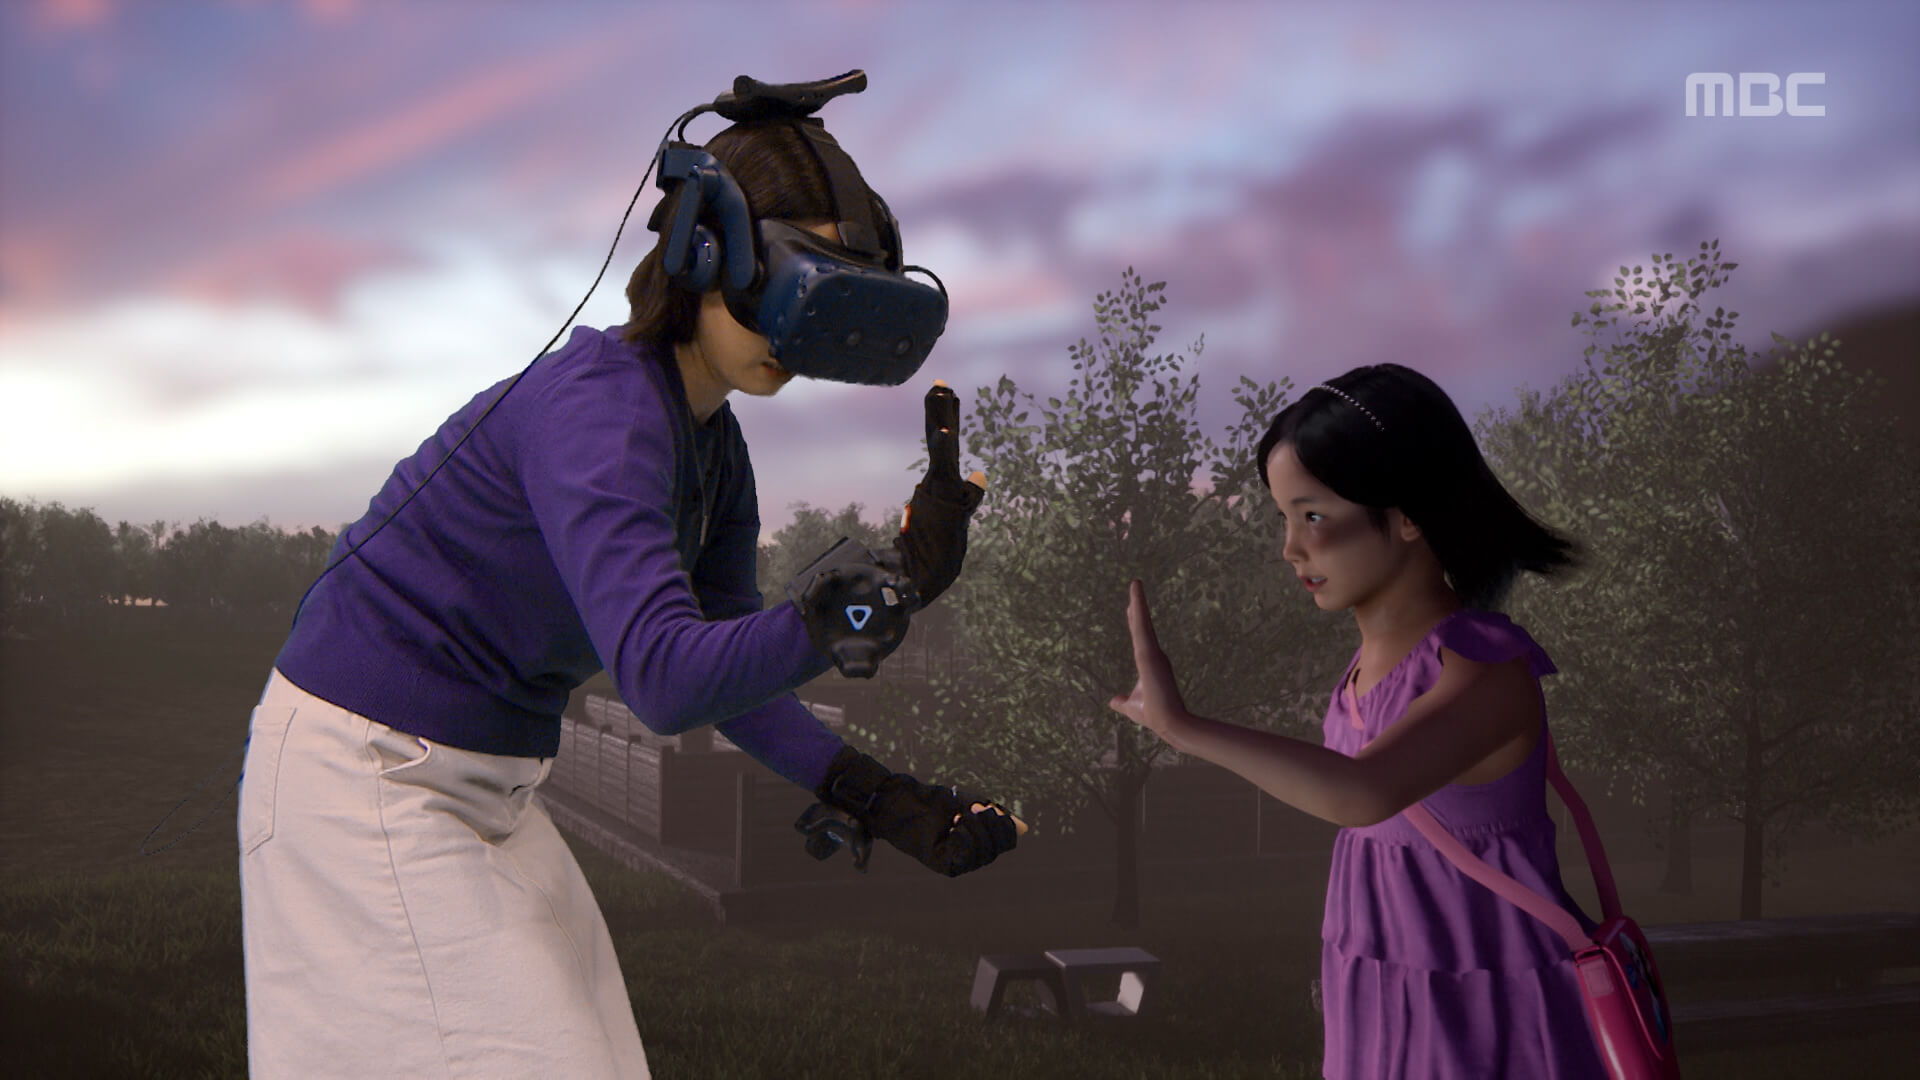 Emotional documentary explores new compassionate possibilities of VR